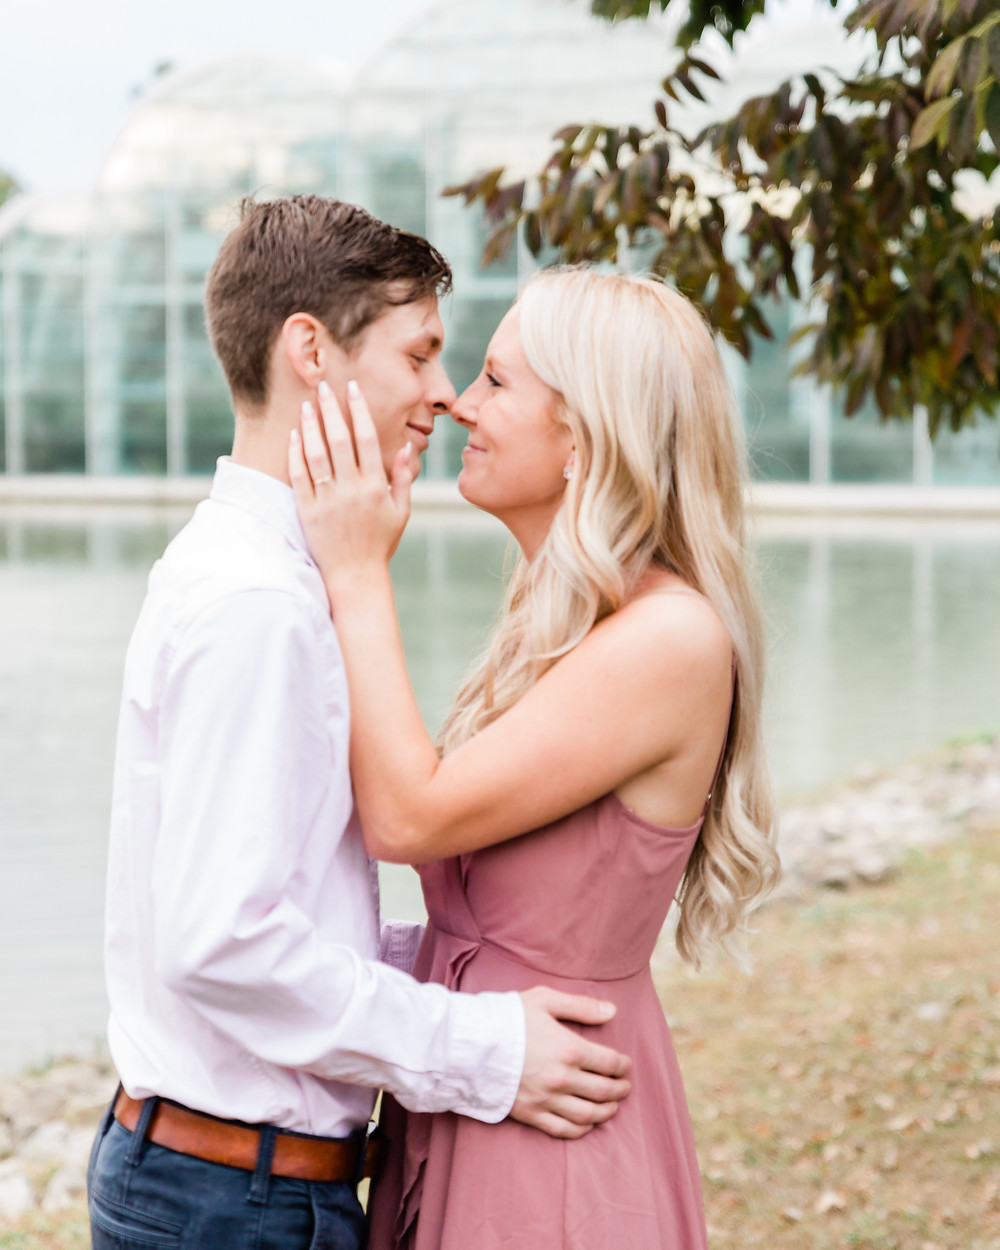 St. Louis Engagement Session | Faust Park Engagement Session | Butterfly House Engagement Session | St. Louis Wedding Photographer